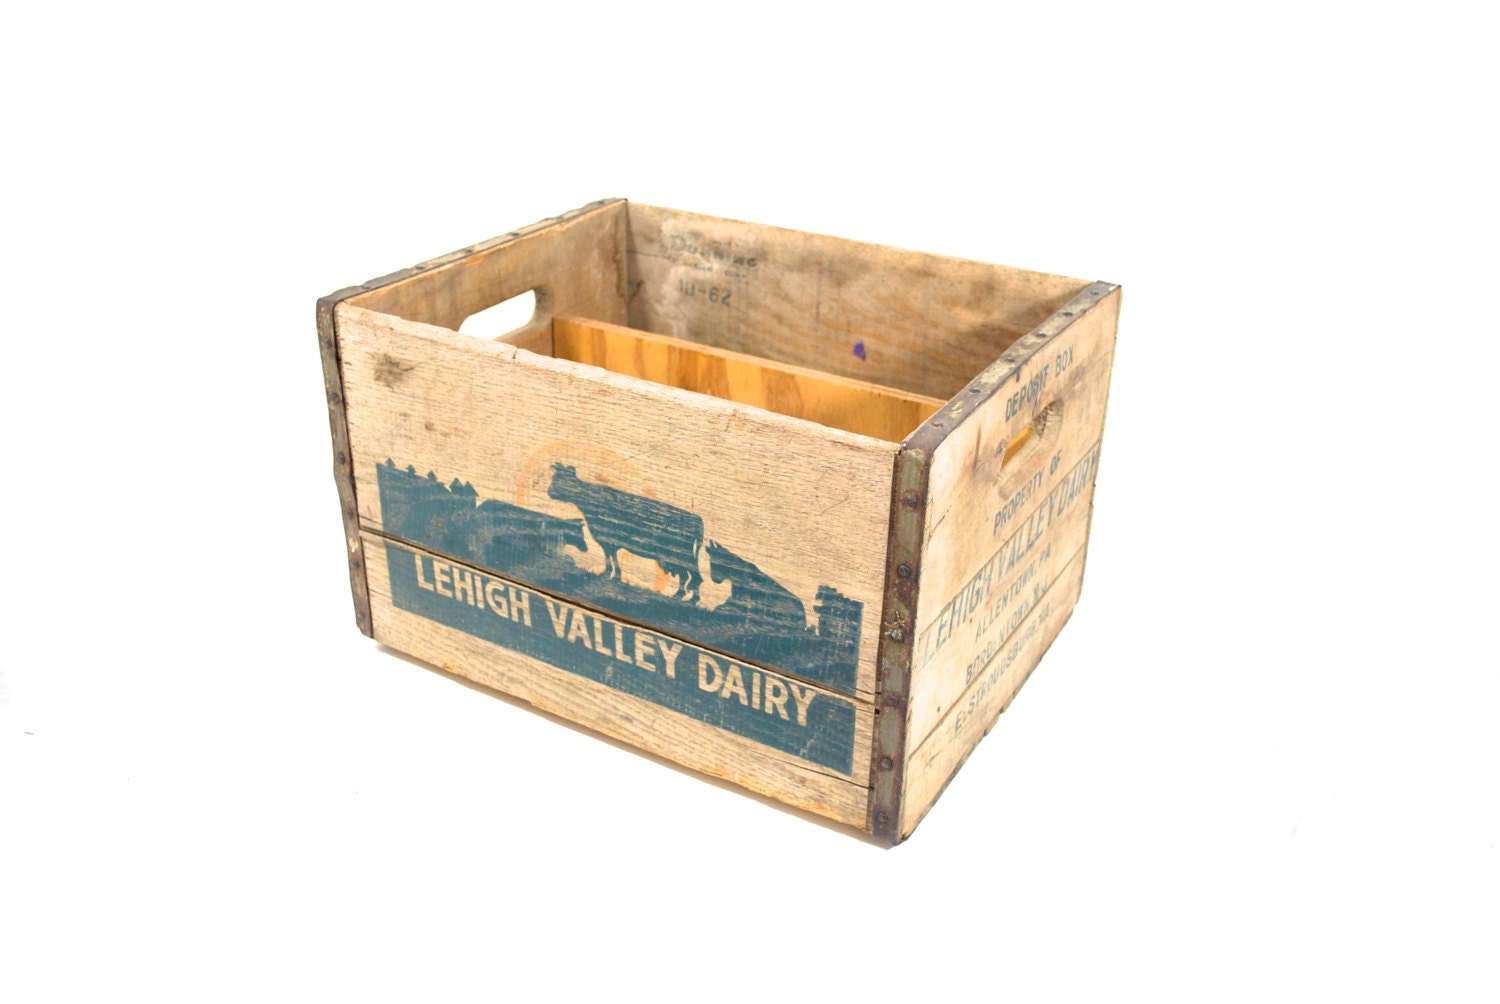 Vintage milk crate dairy box home decor for Decorating with milk crates